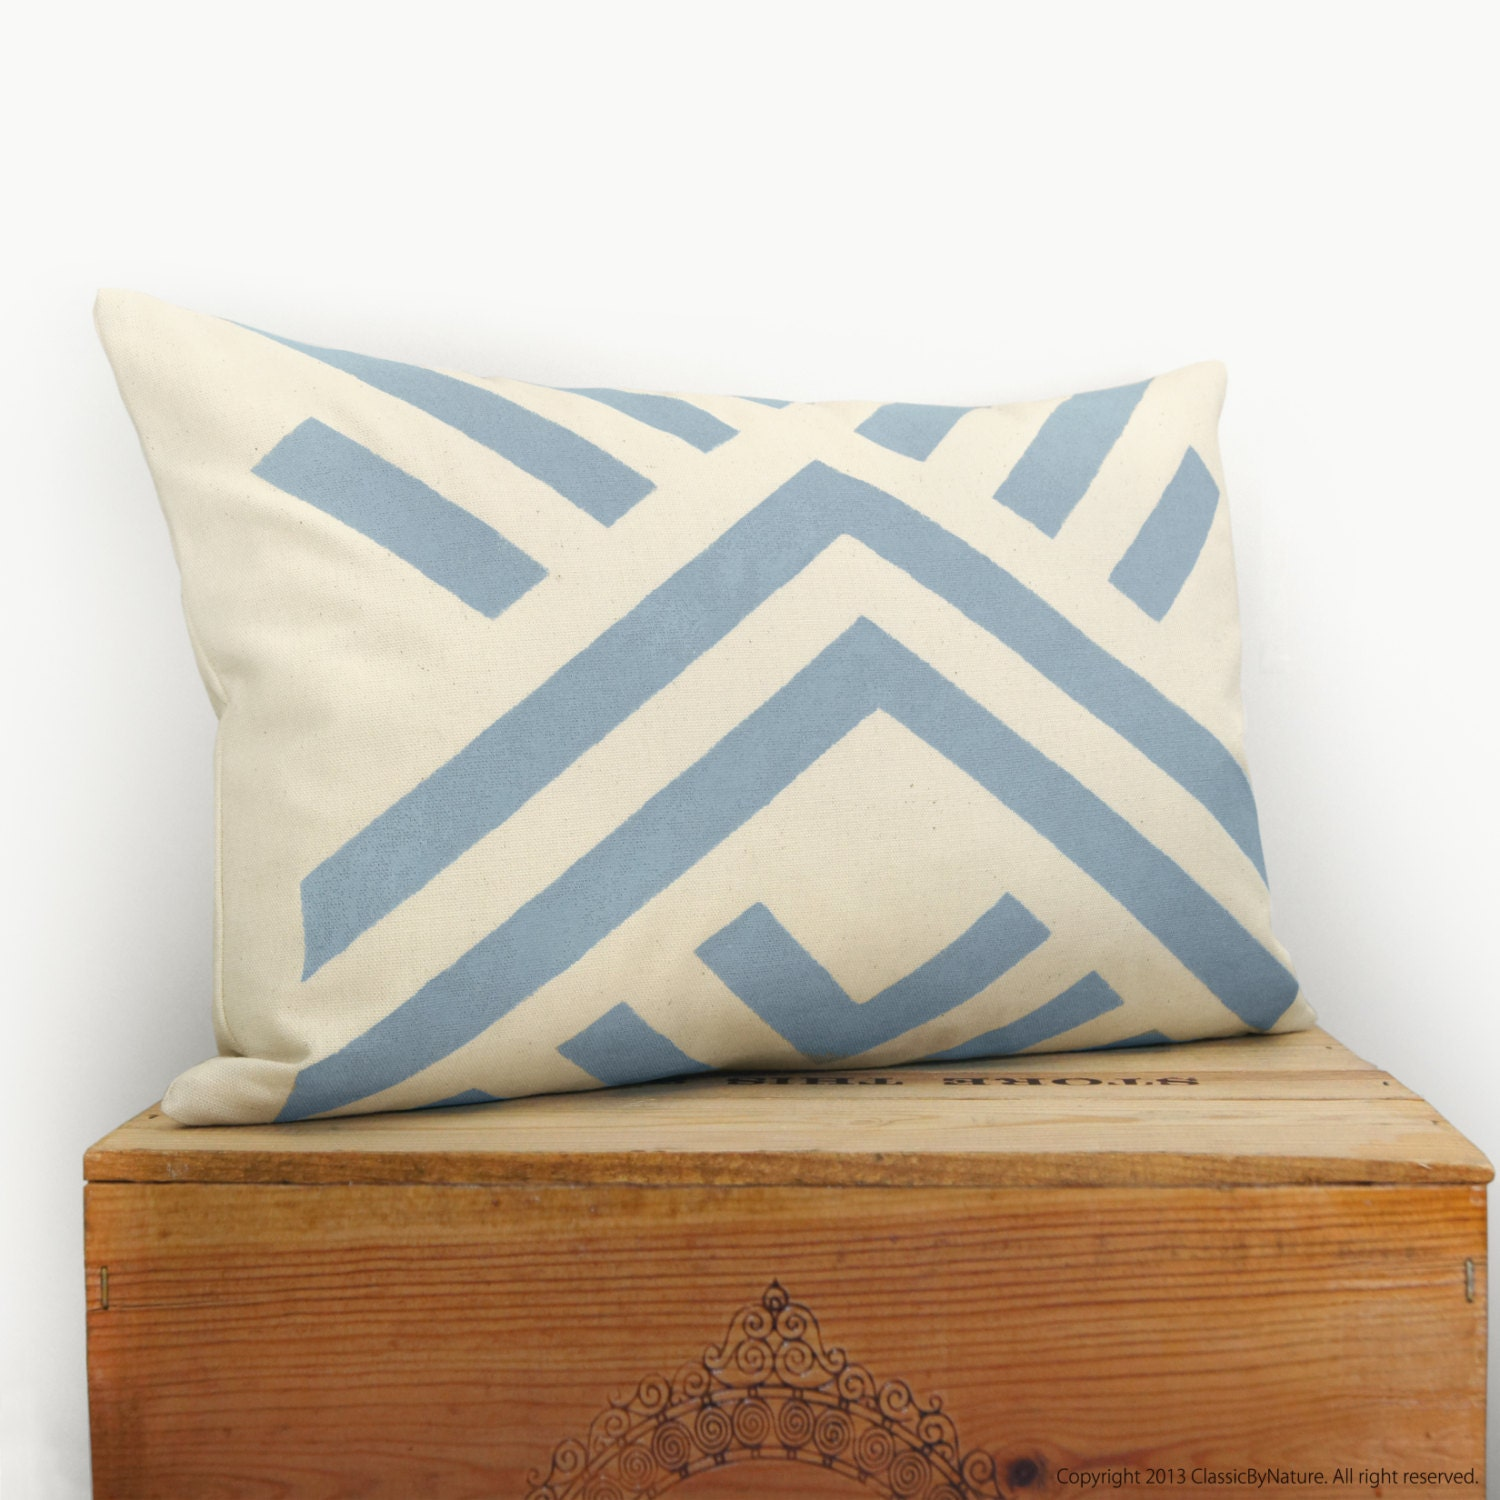 Chevron pillow - Throw pillow covers - Hand printed pillow in  dusk blue and cream with geometric design - 12x18 lumbar pillow cover - ClassicByNature